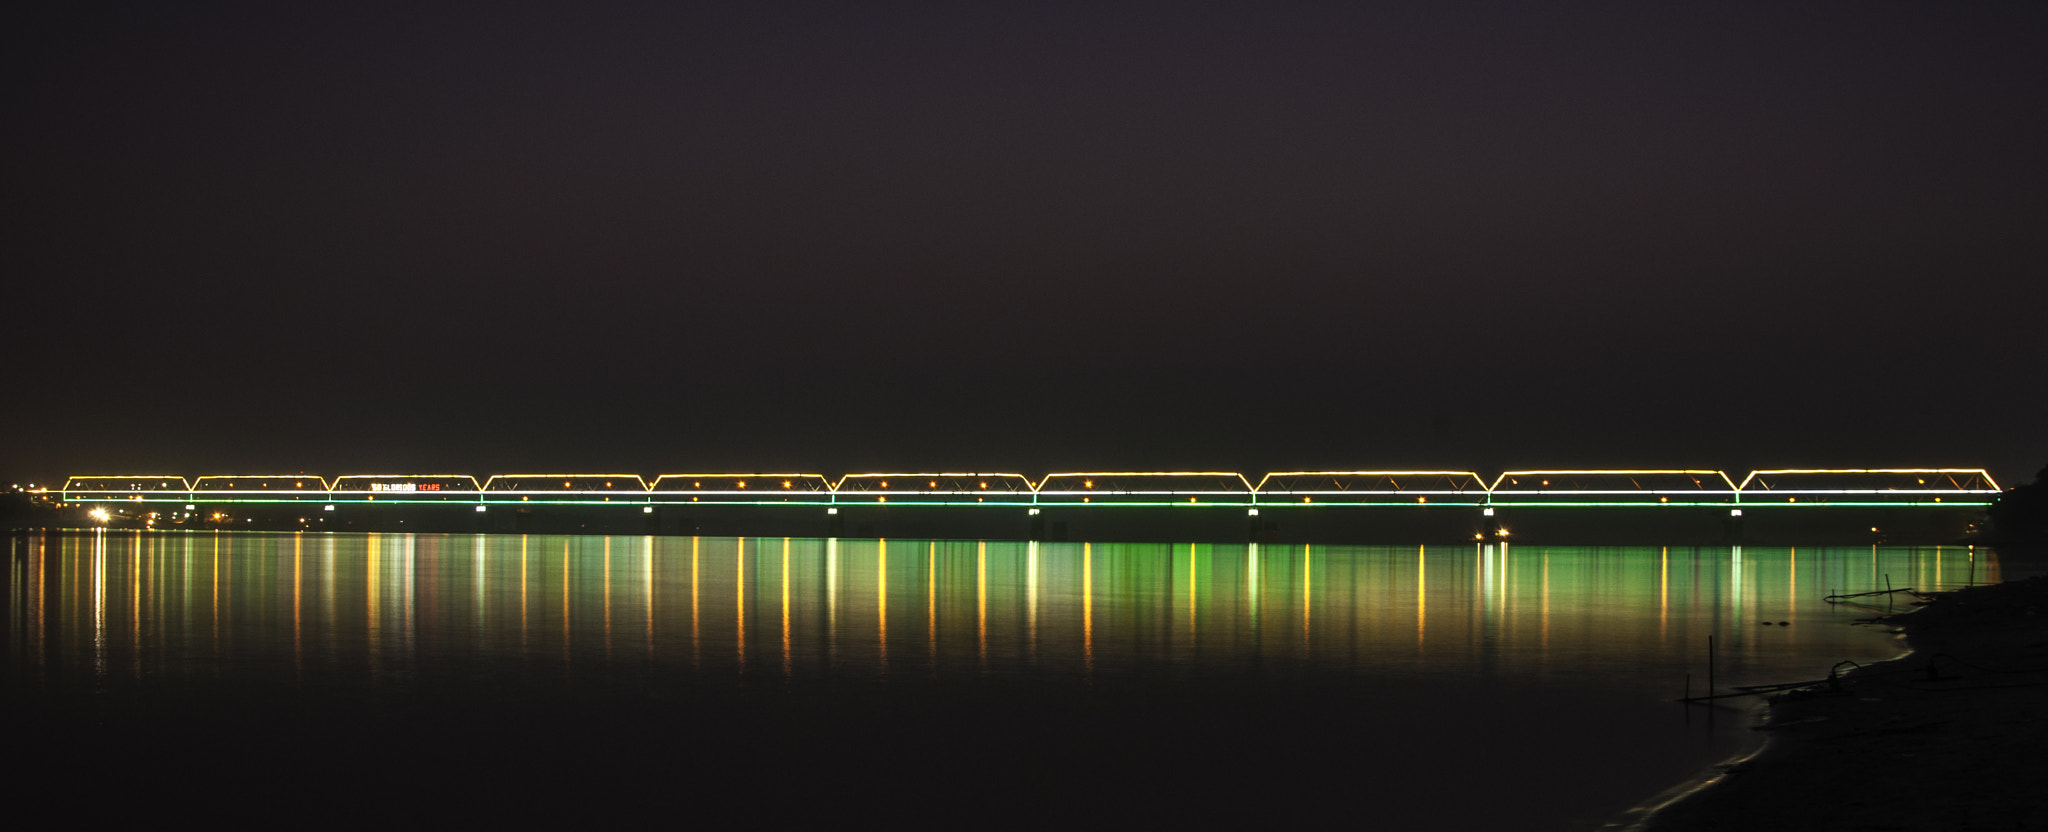 Photograph Saraighat Bridge on 09-11-2012 Lighting for 50 years celebrations. by Pranab Jyoti Goswami on 500px